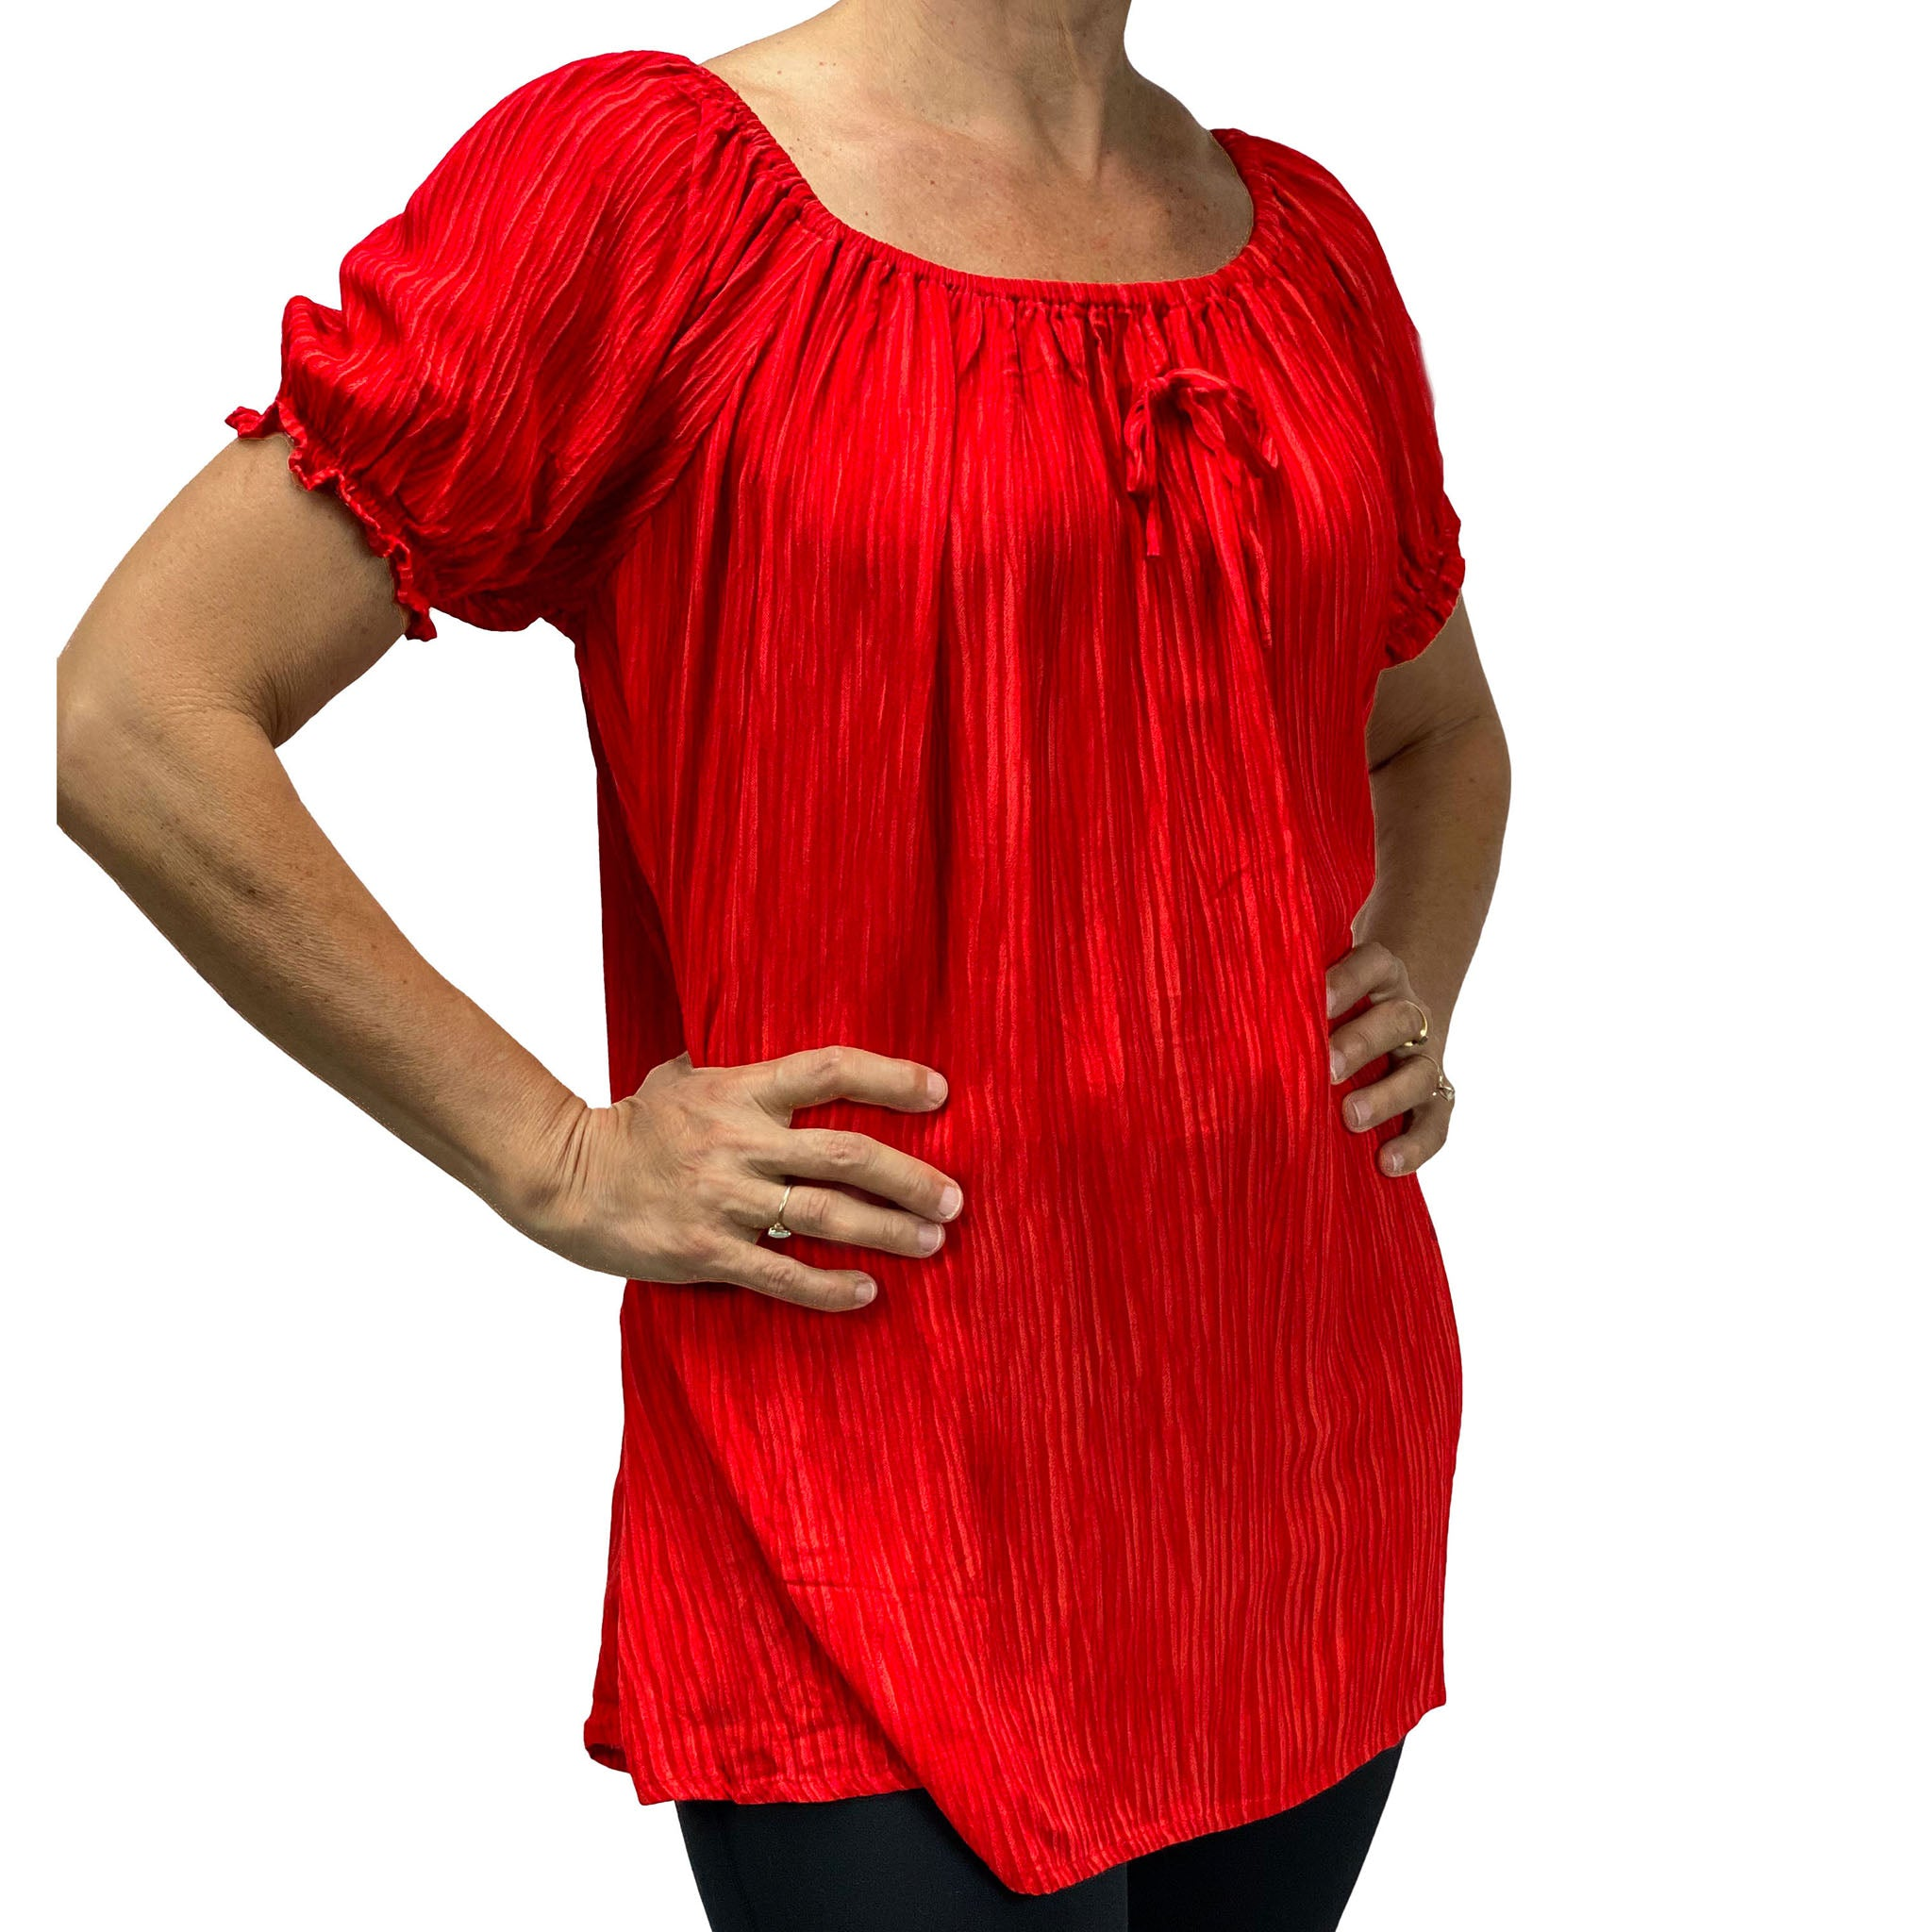 Womans Renaissance blouse pirate top bright red